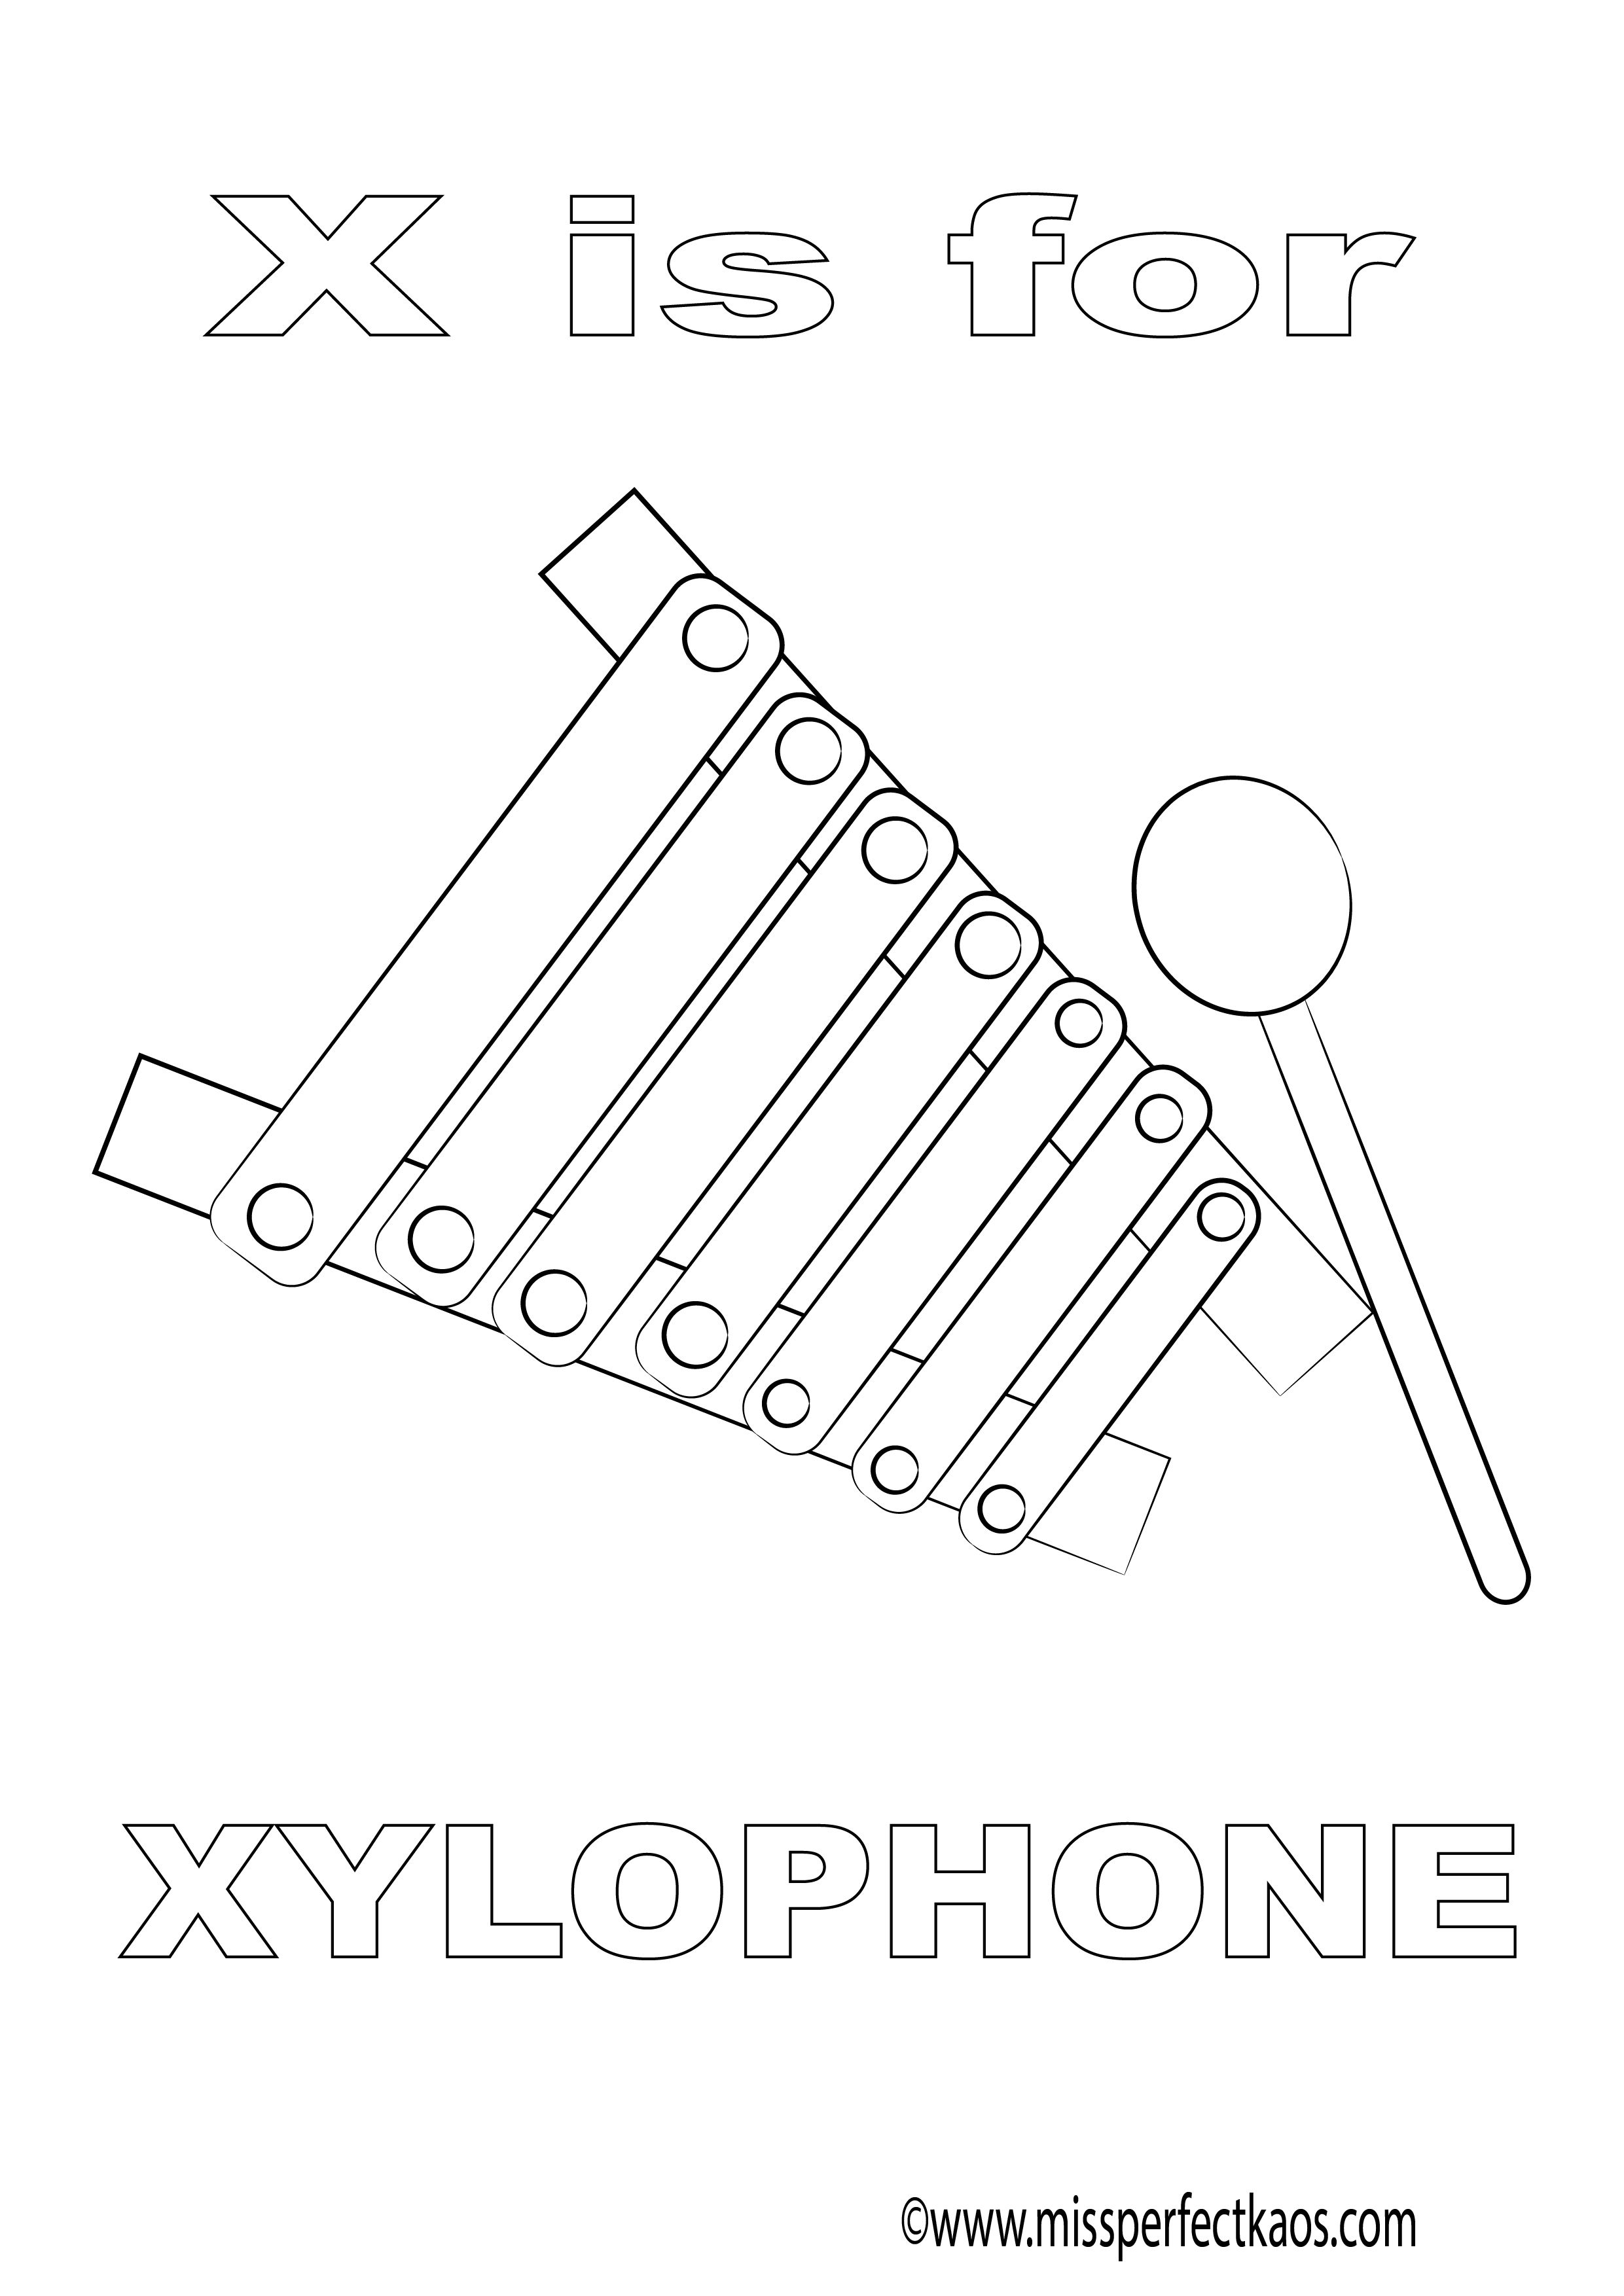 X Is For Xylophone Coloring Page For Kids Learn The Alphabet And